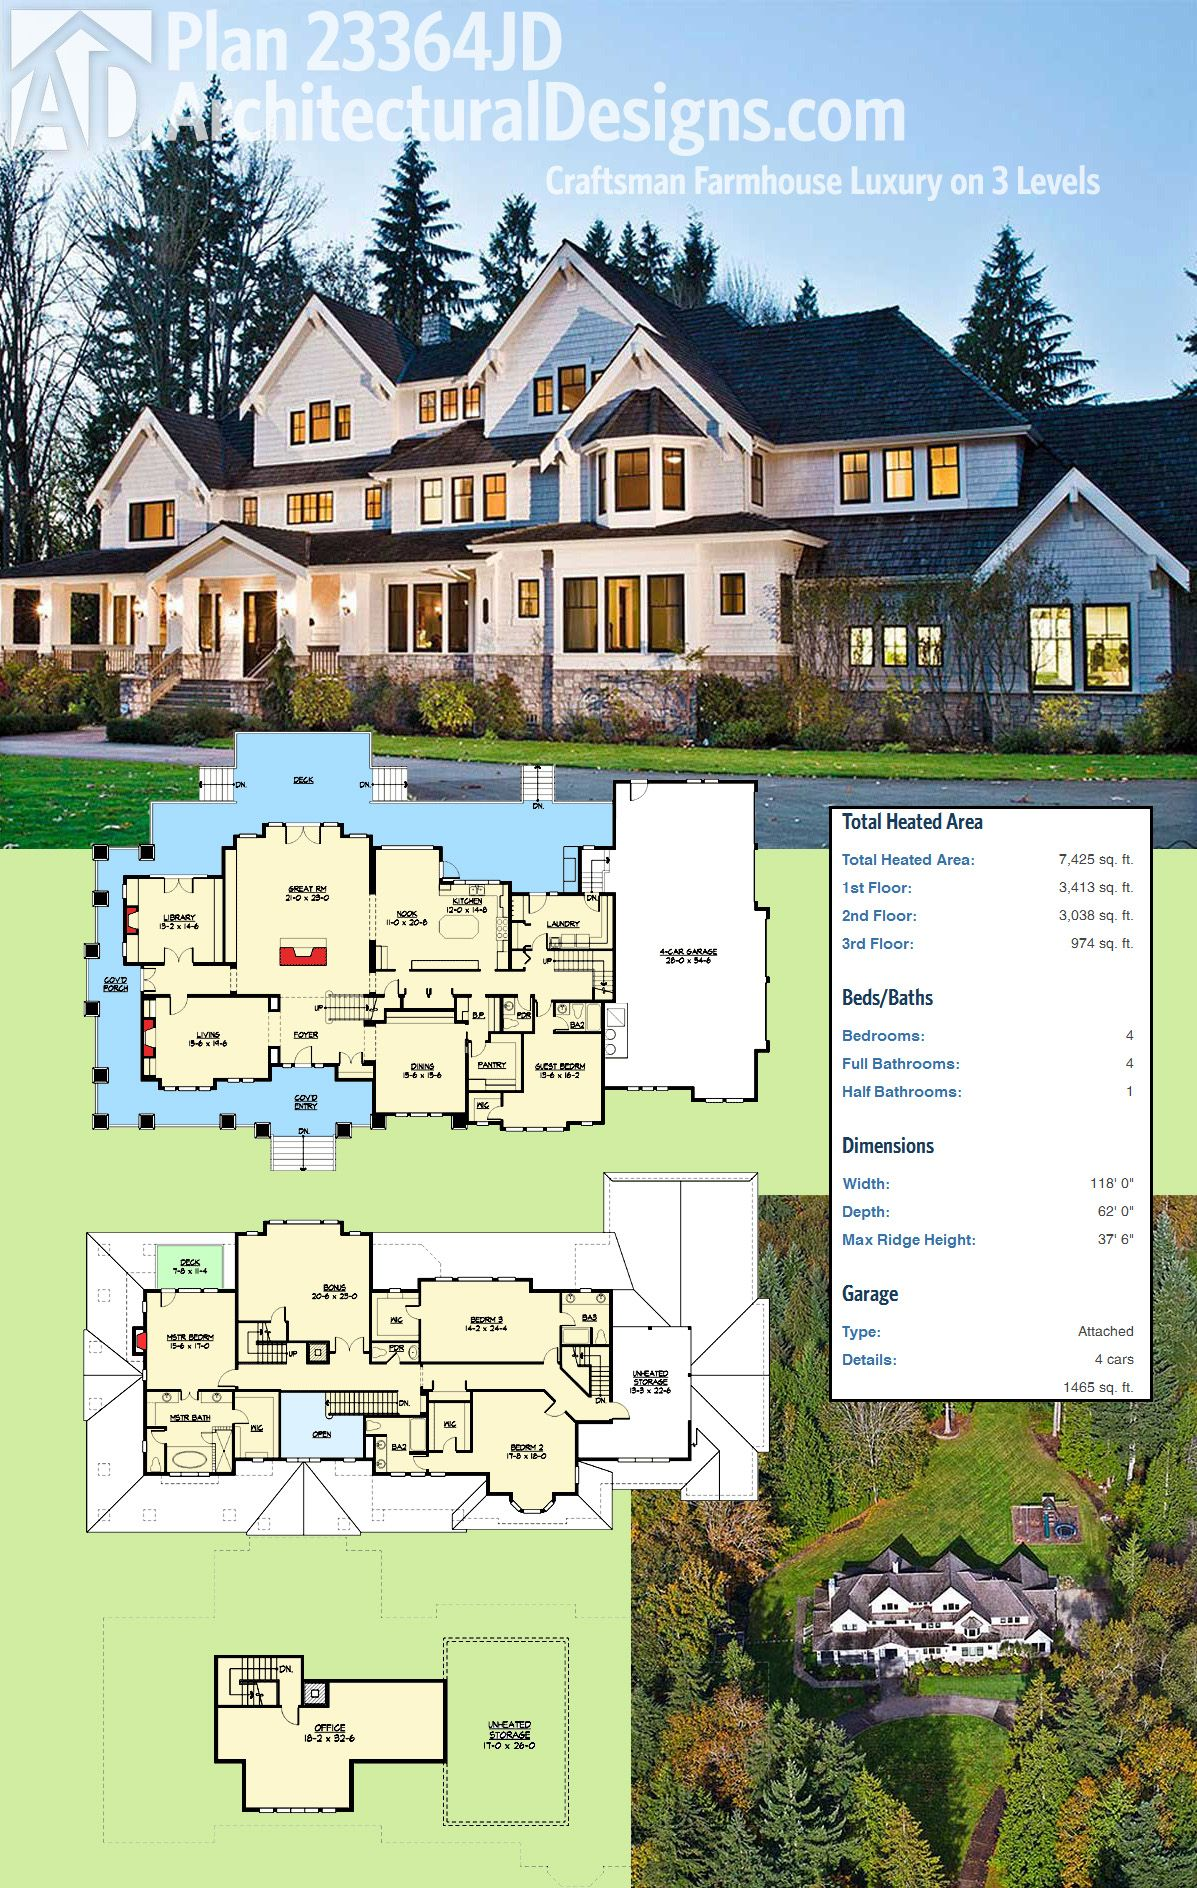 luxury home floorplans plan 23364jd luxury on 3 levels in 2019 house plans craftsman house plans craftsman farmhouse 4373